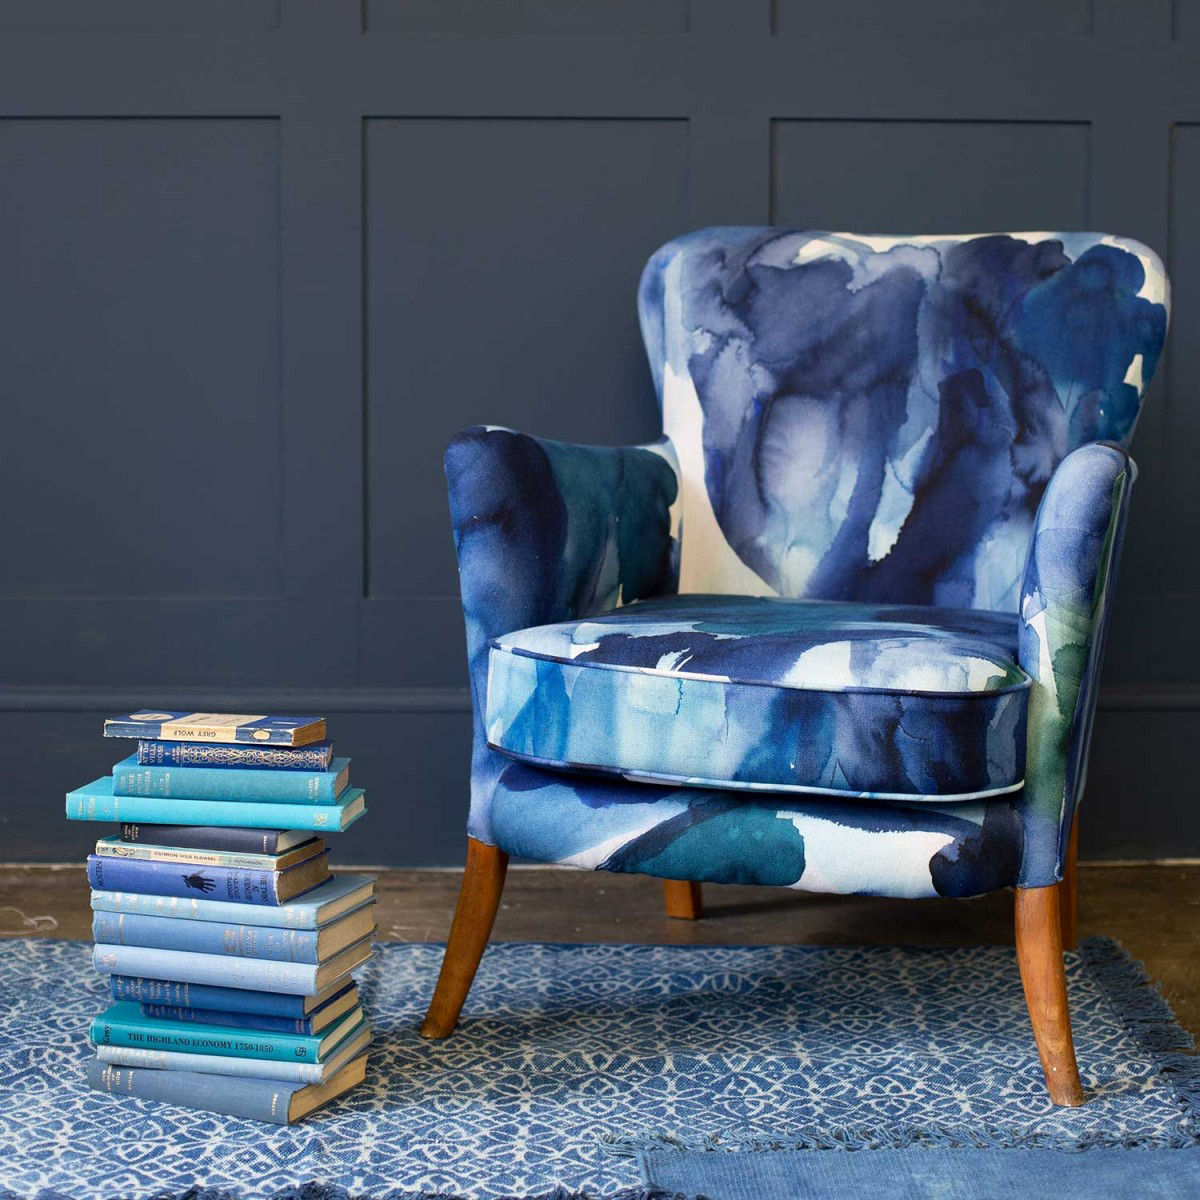 Interior designer and colour lover Sophie Robinson looks at why so many of us are opting for navy within our interiors. The inky watercolour design on this armchair helps to add interest and pattern to a room scheme. #navydecor #colourcrush #sophierobinson